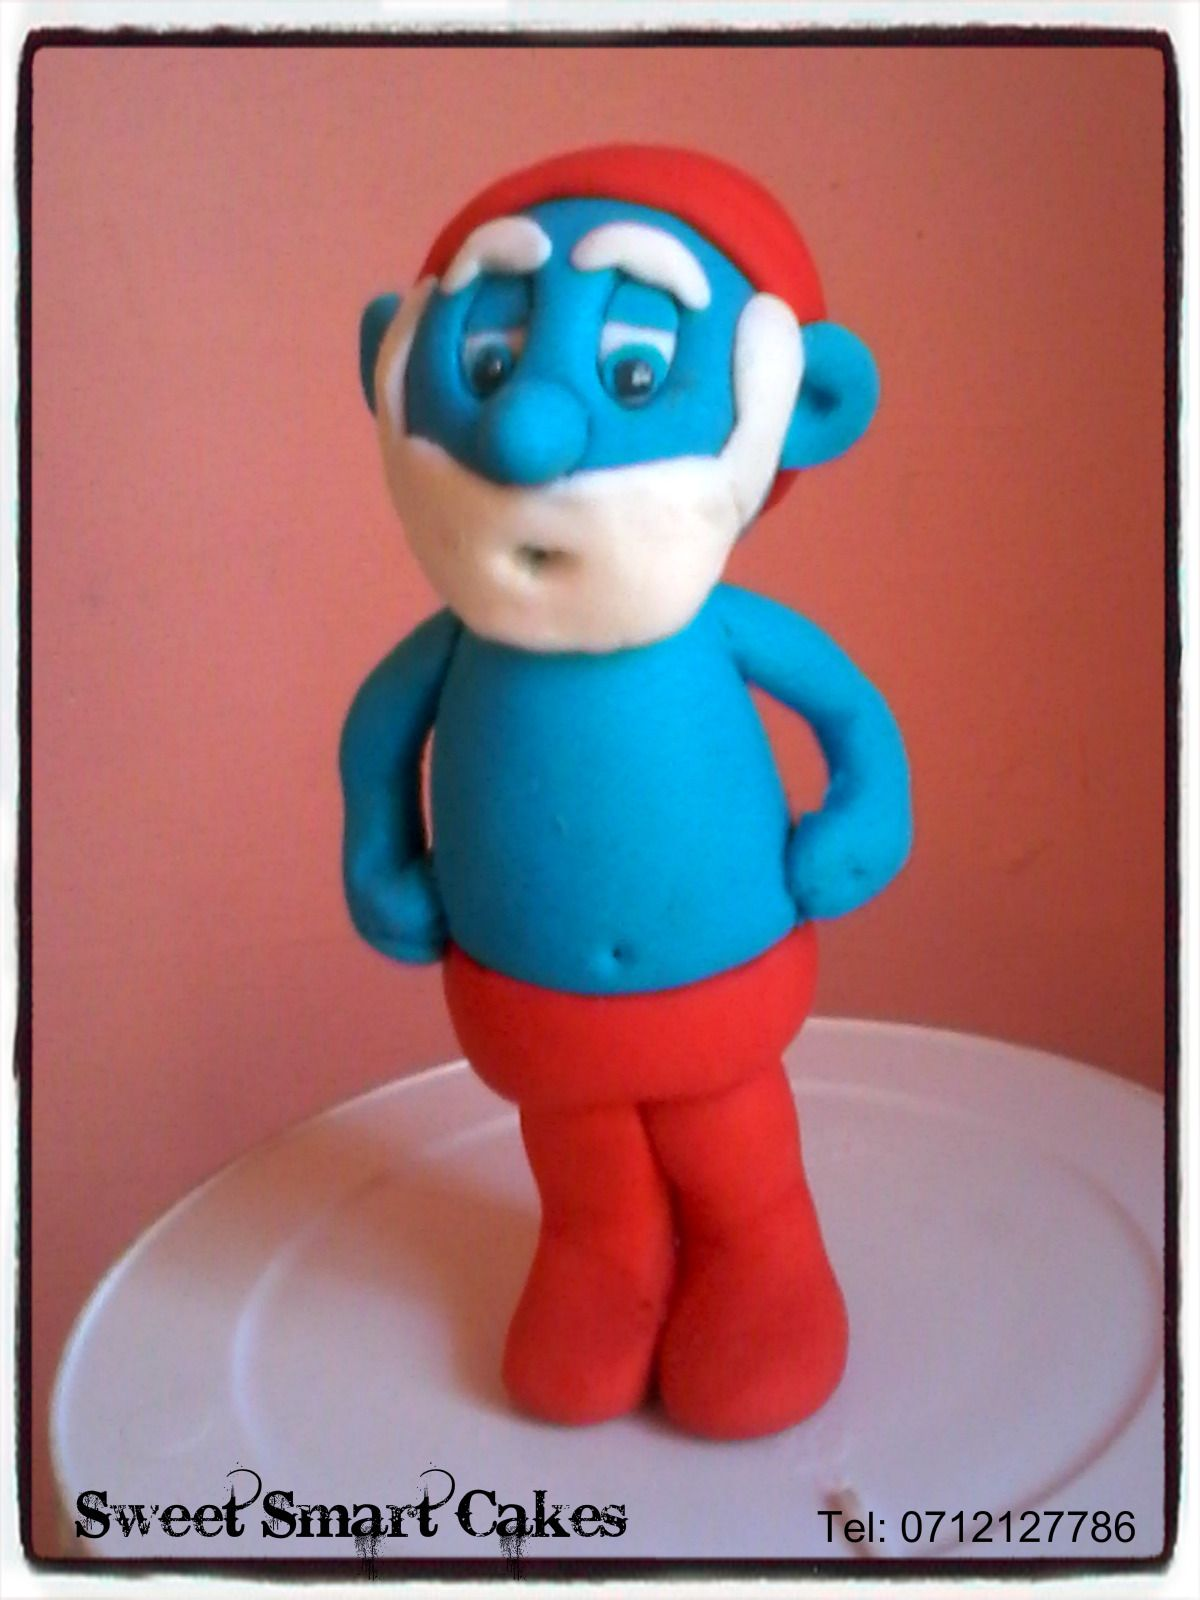 Edible Plastic Icing smurfs @ R70 each (8cm) For orders & info, email SweetArtBfn@gmail.com or call 0712127786 (Bloemfontein, South Africa)